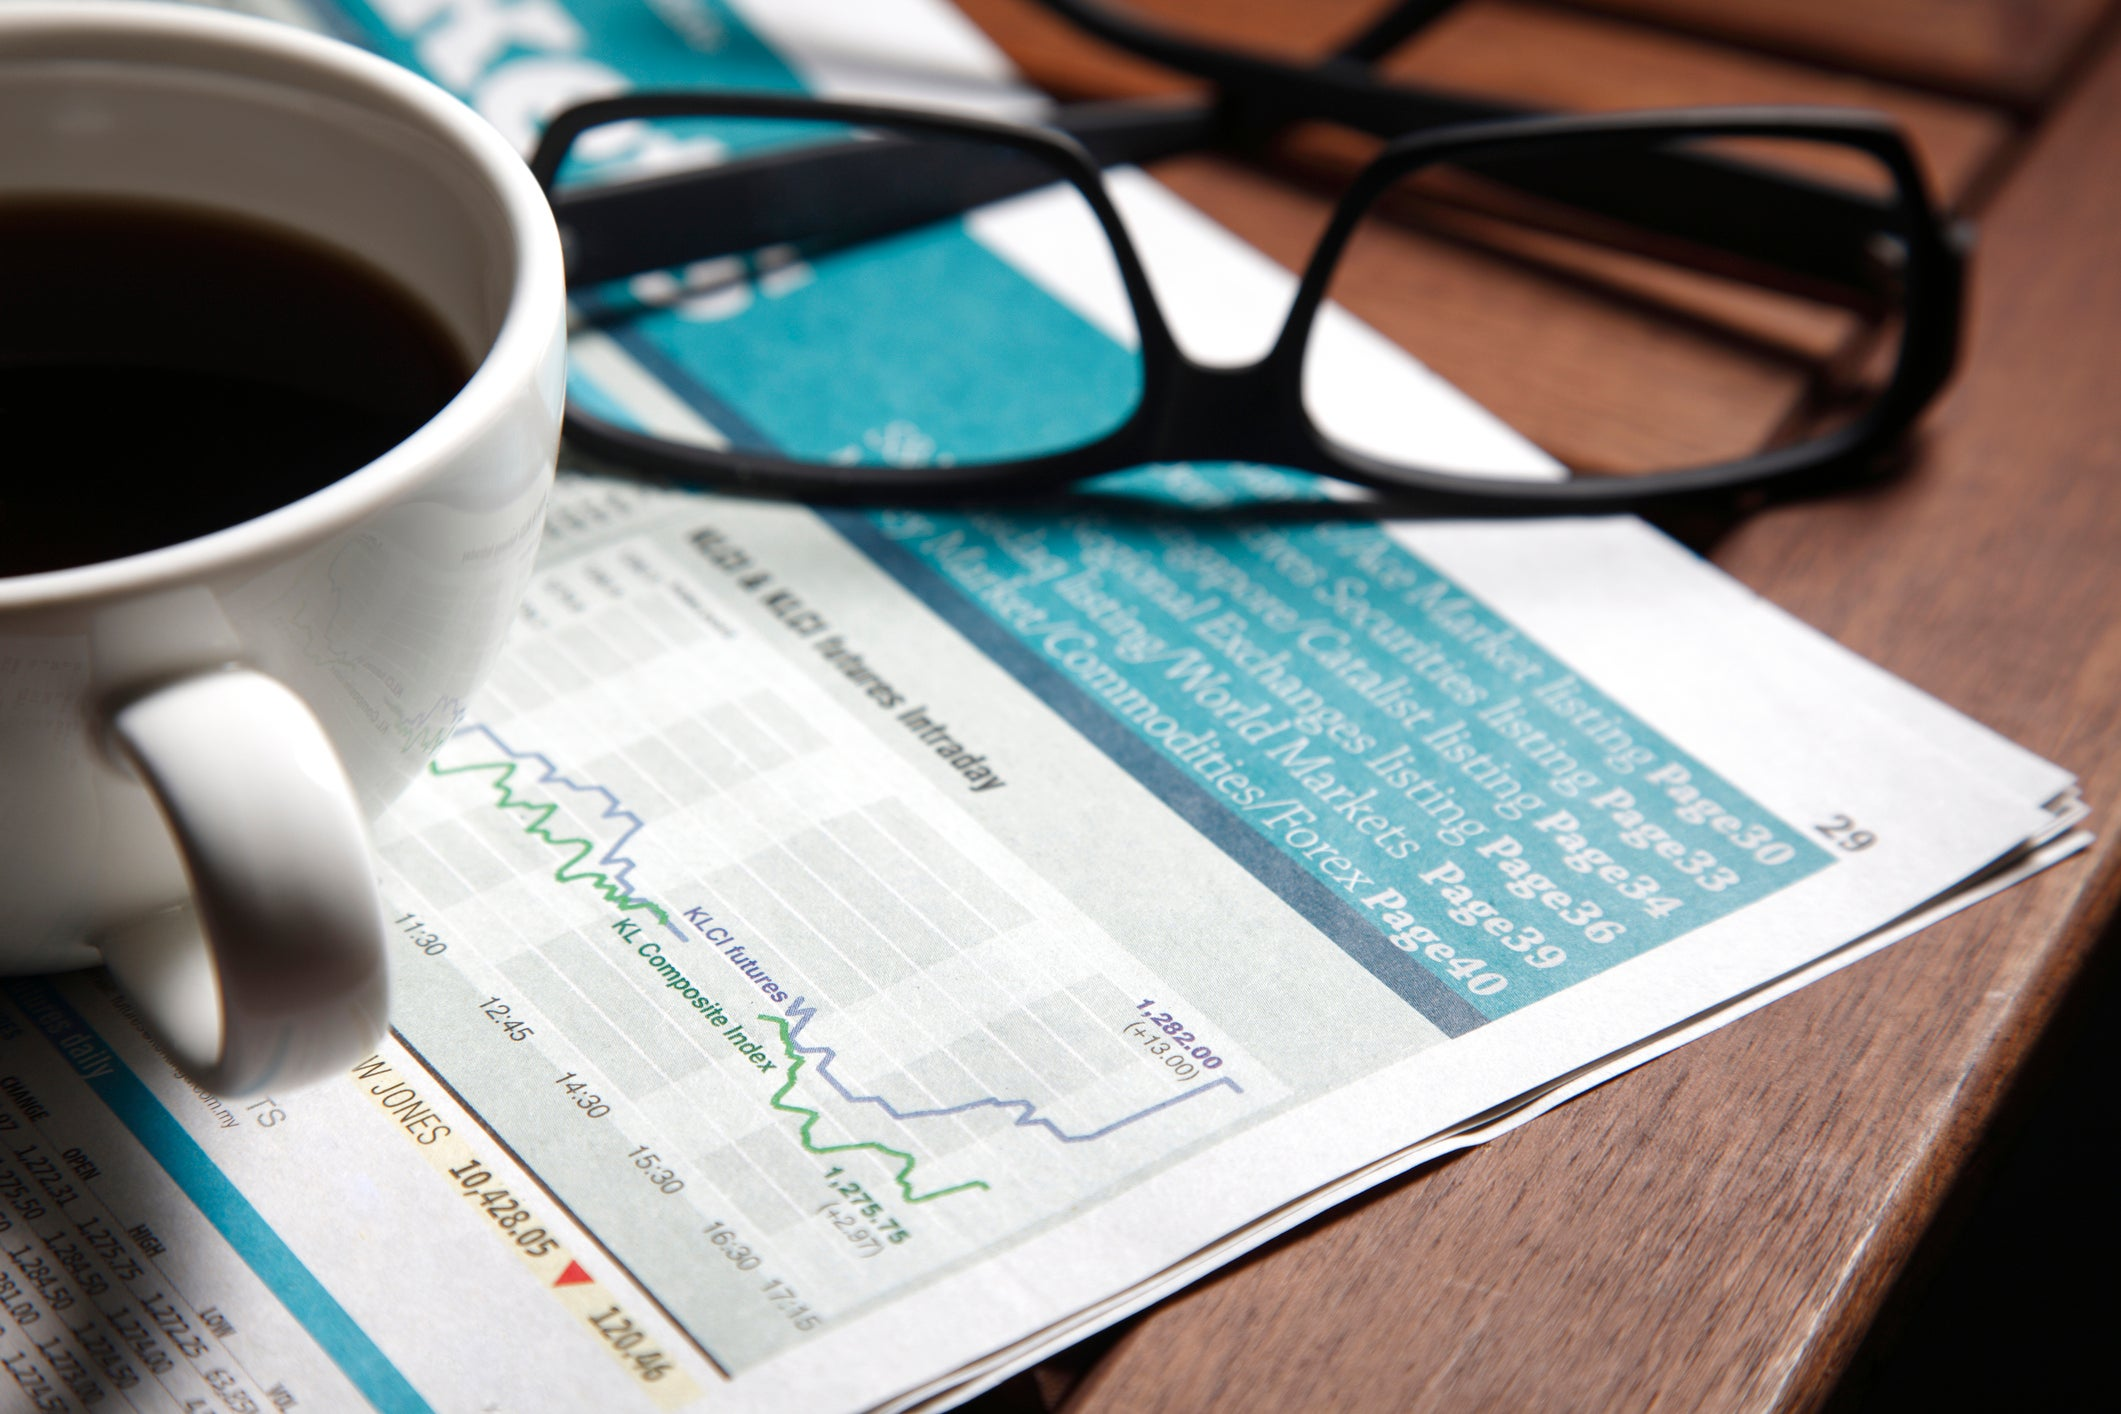 A coffee mug and glasses sit on top of a financial newspaper.